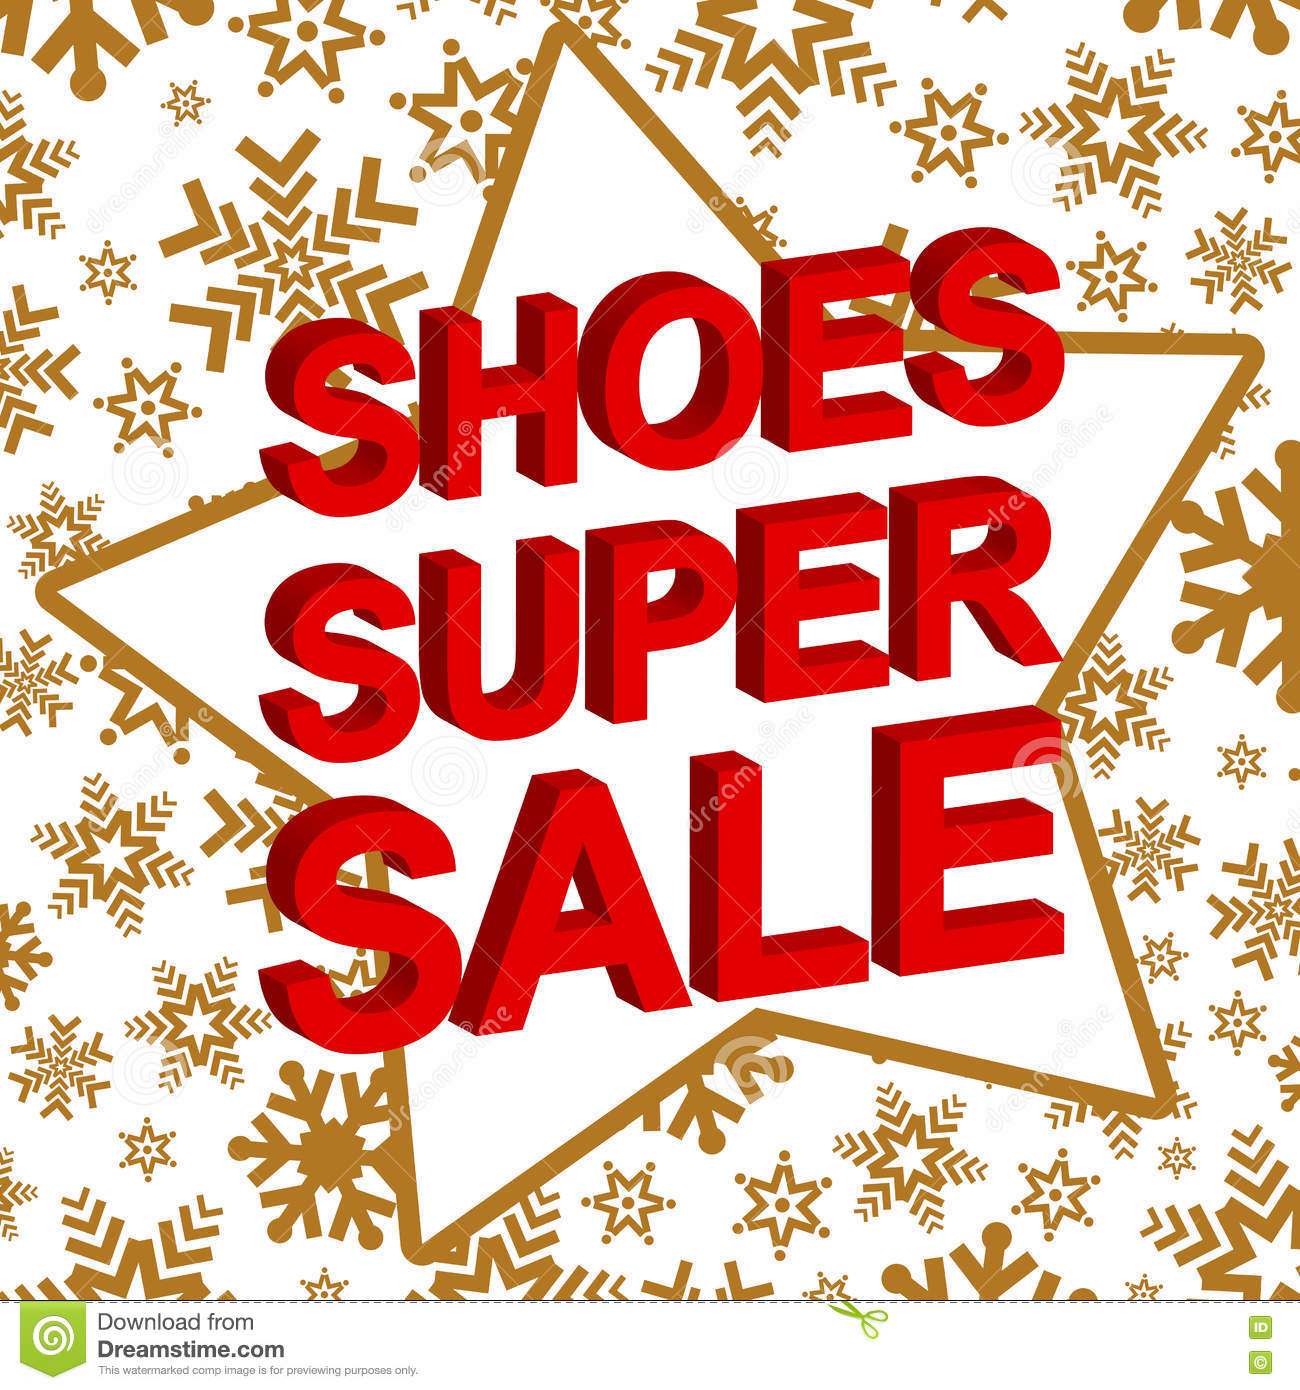 614c68419 ... Shoe Sale Banner: Winter Sale Poster With SHOES SUPER SALE Text.  Advertising